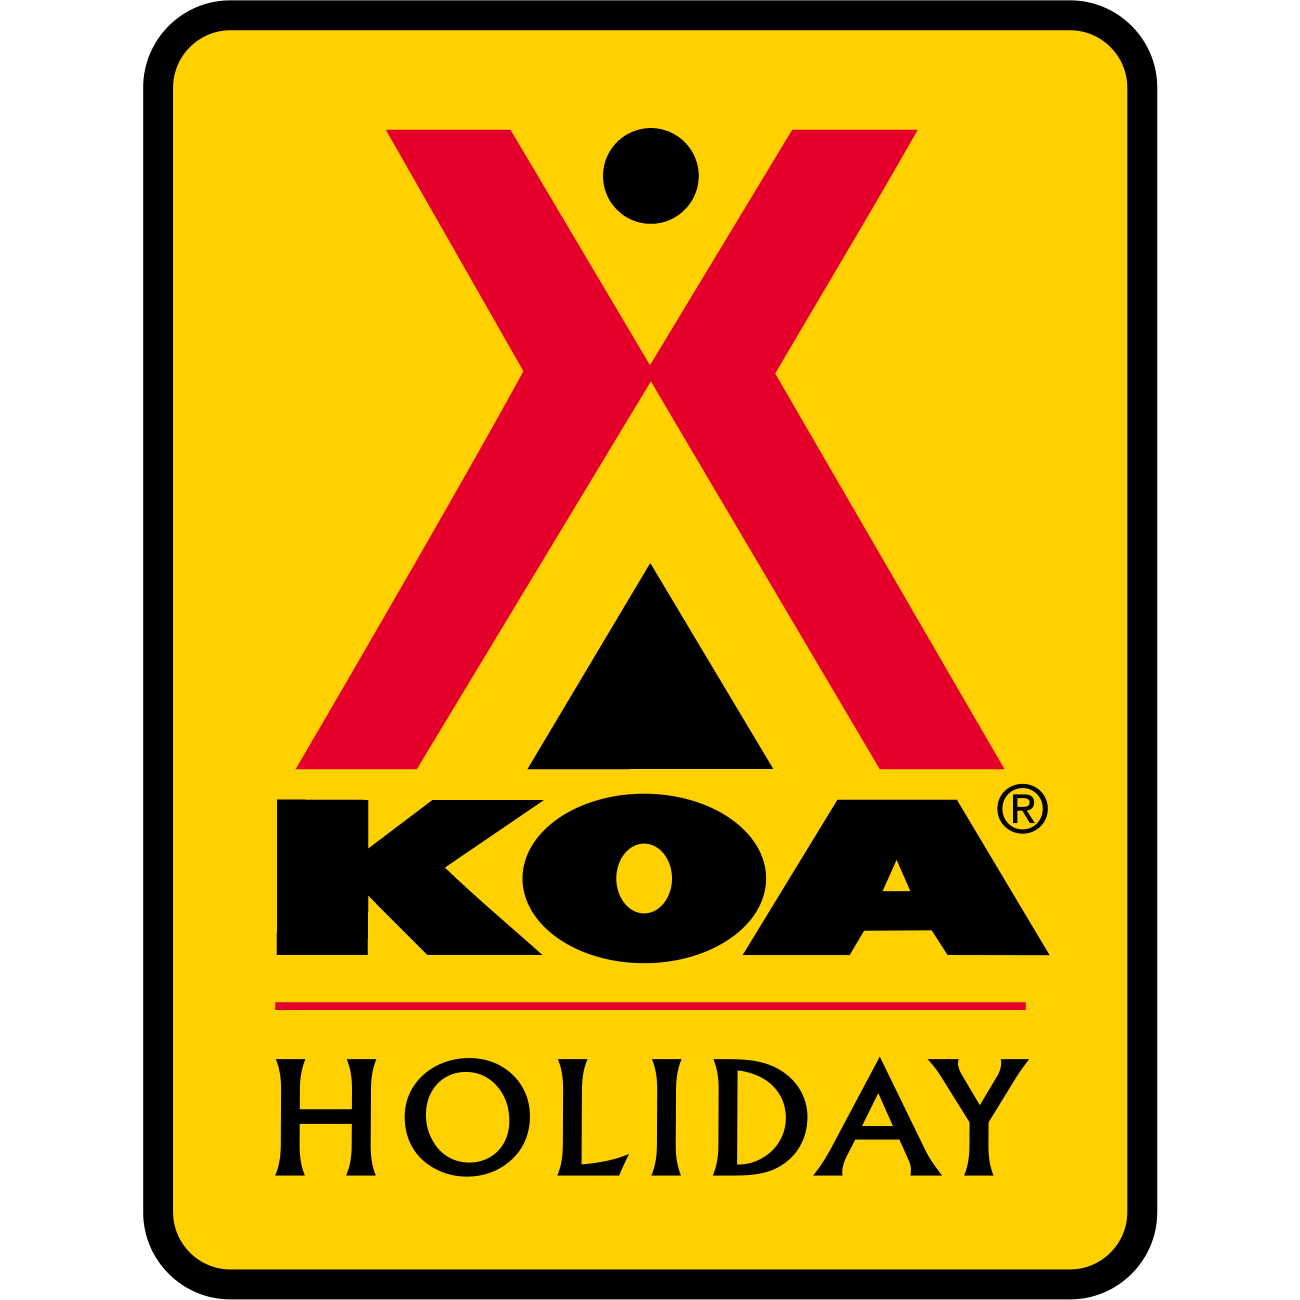 Chautauqua Lake Koa Holiday